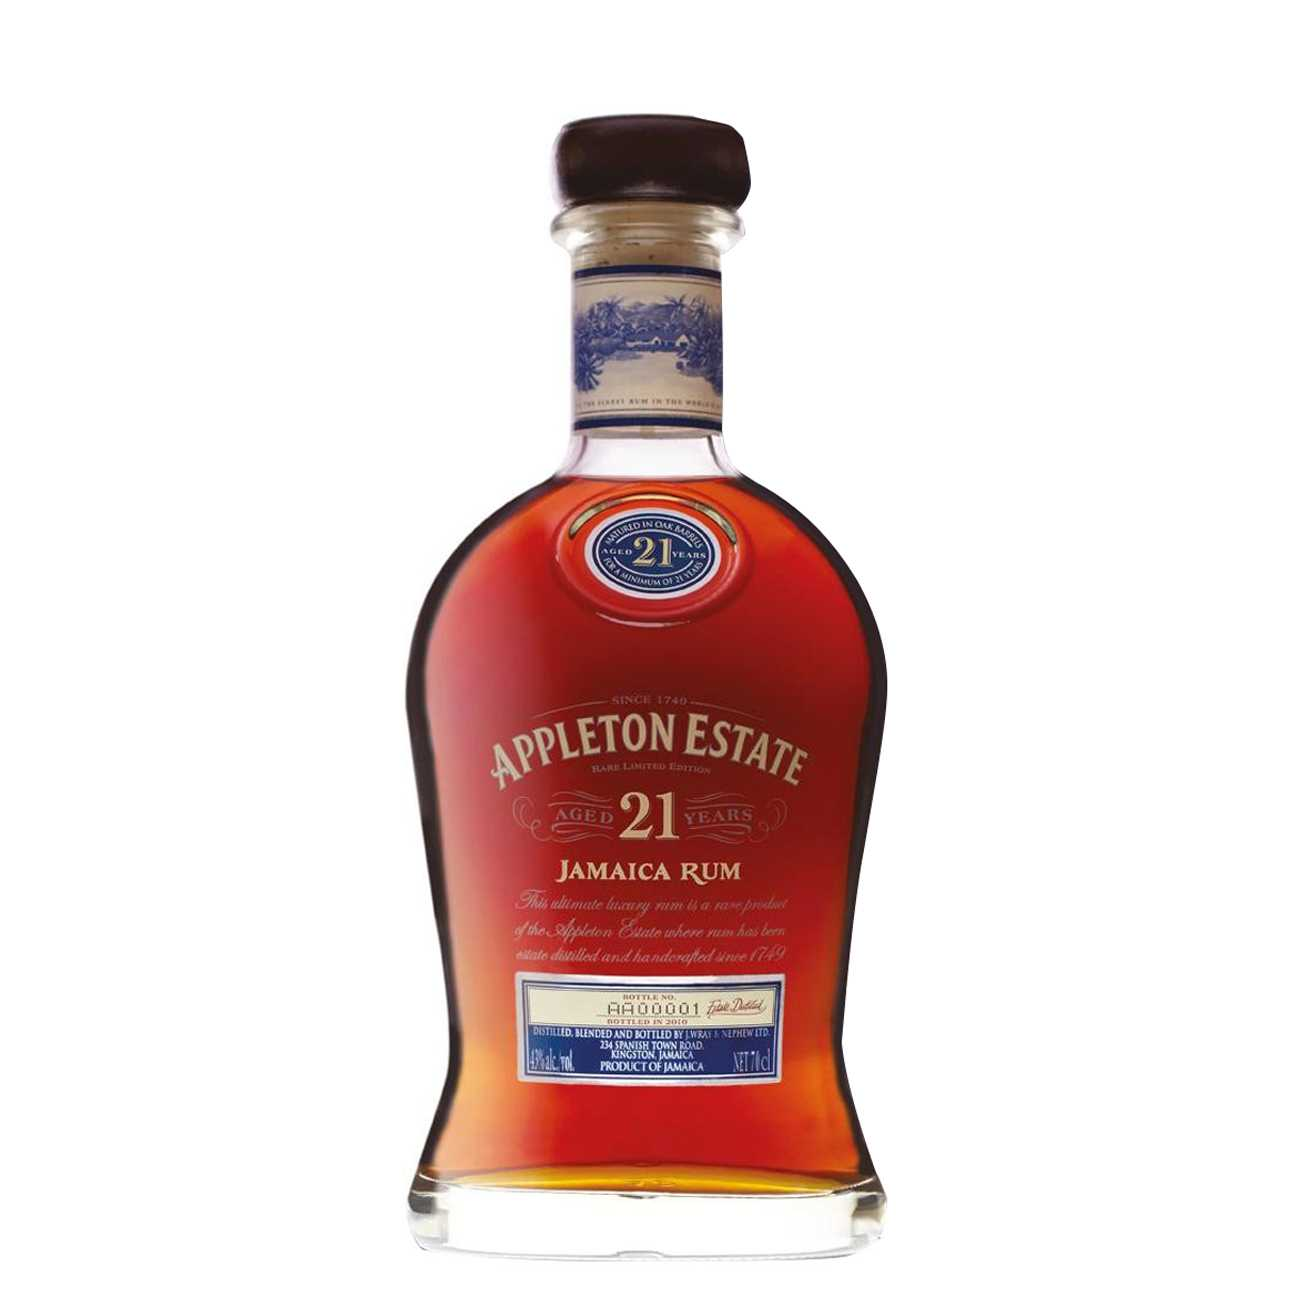 Rom, 21 YEAR OLD 700 ML, Appleton Estate